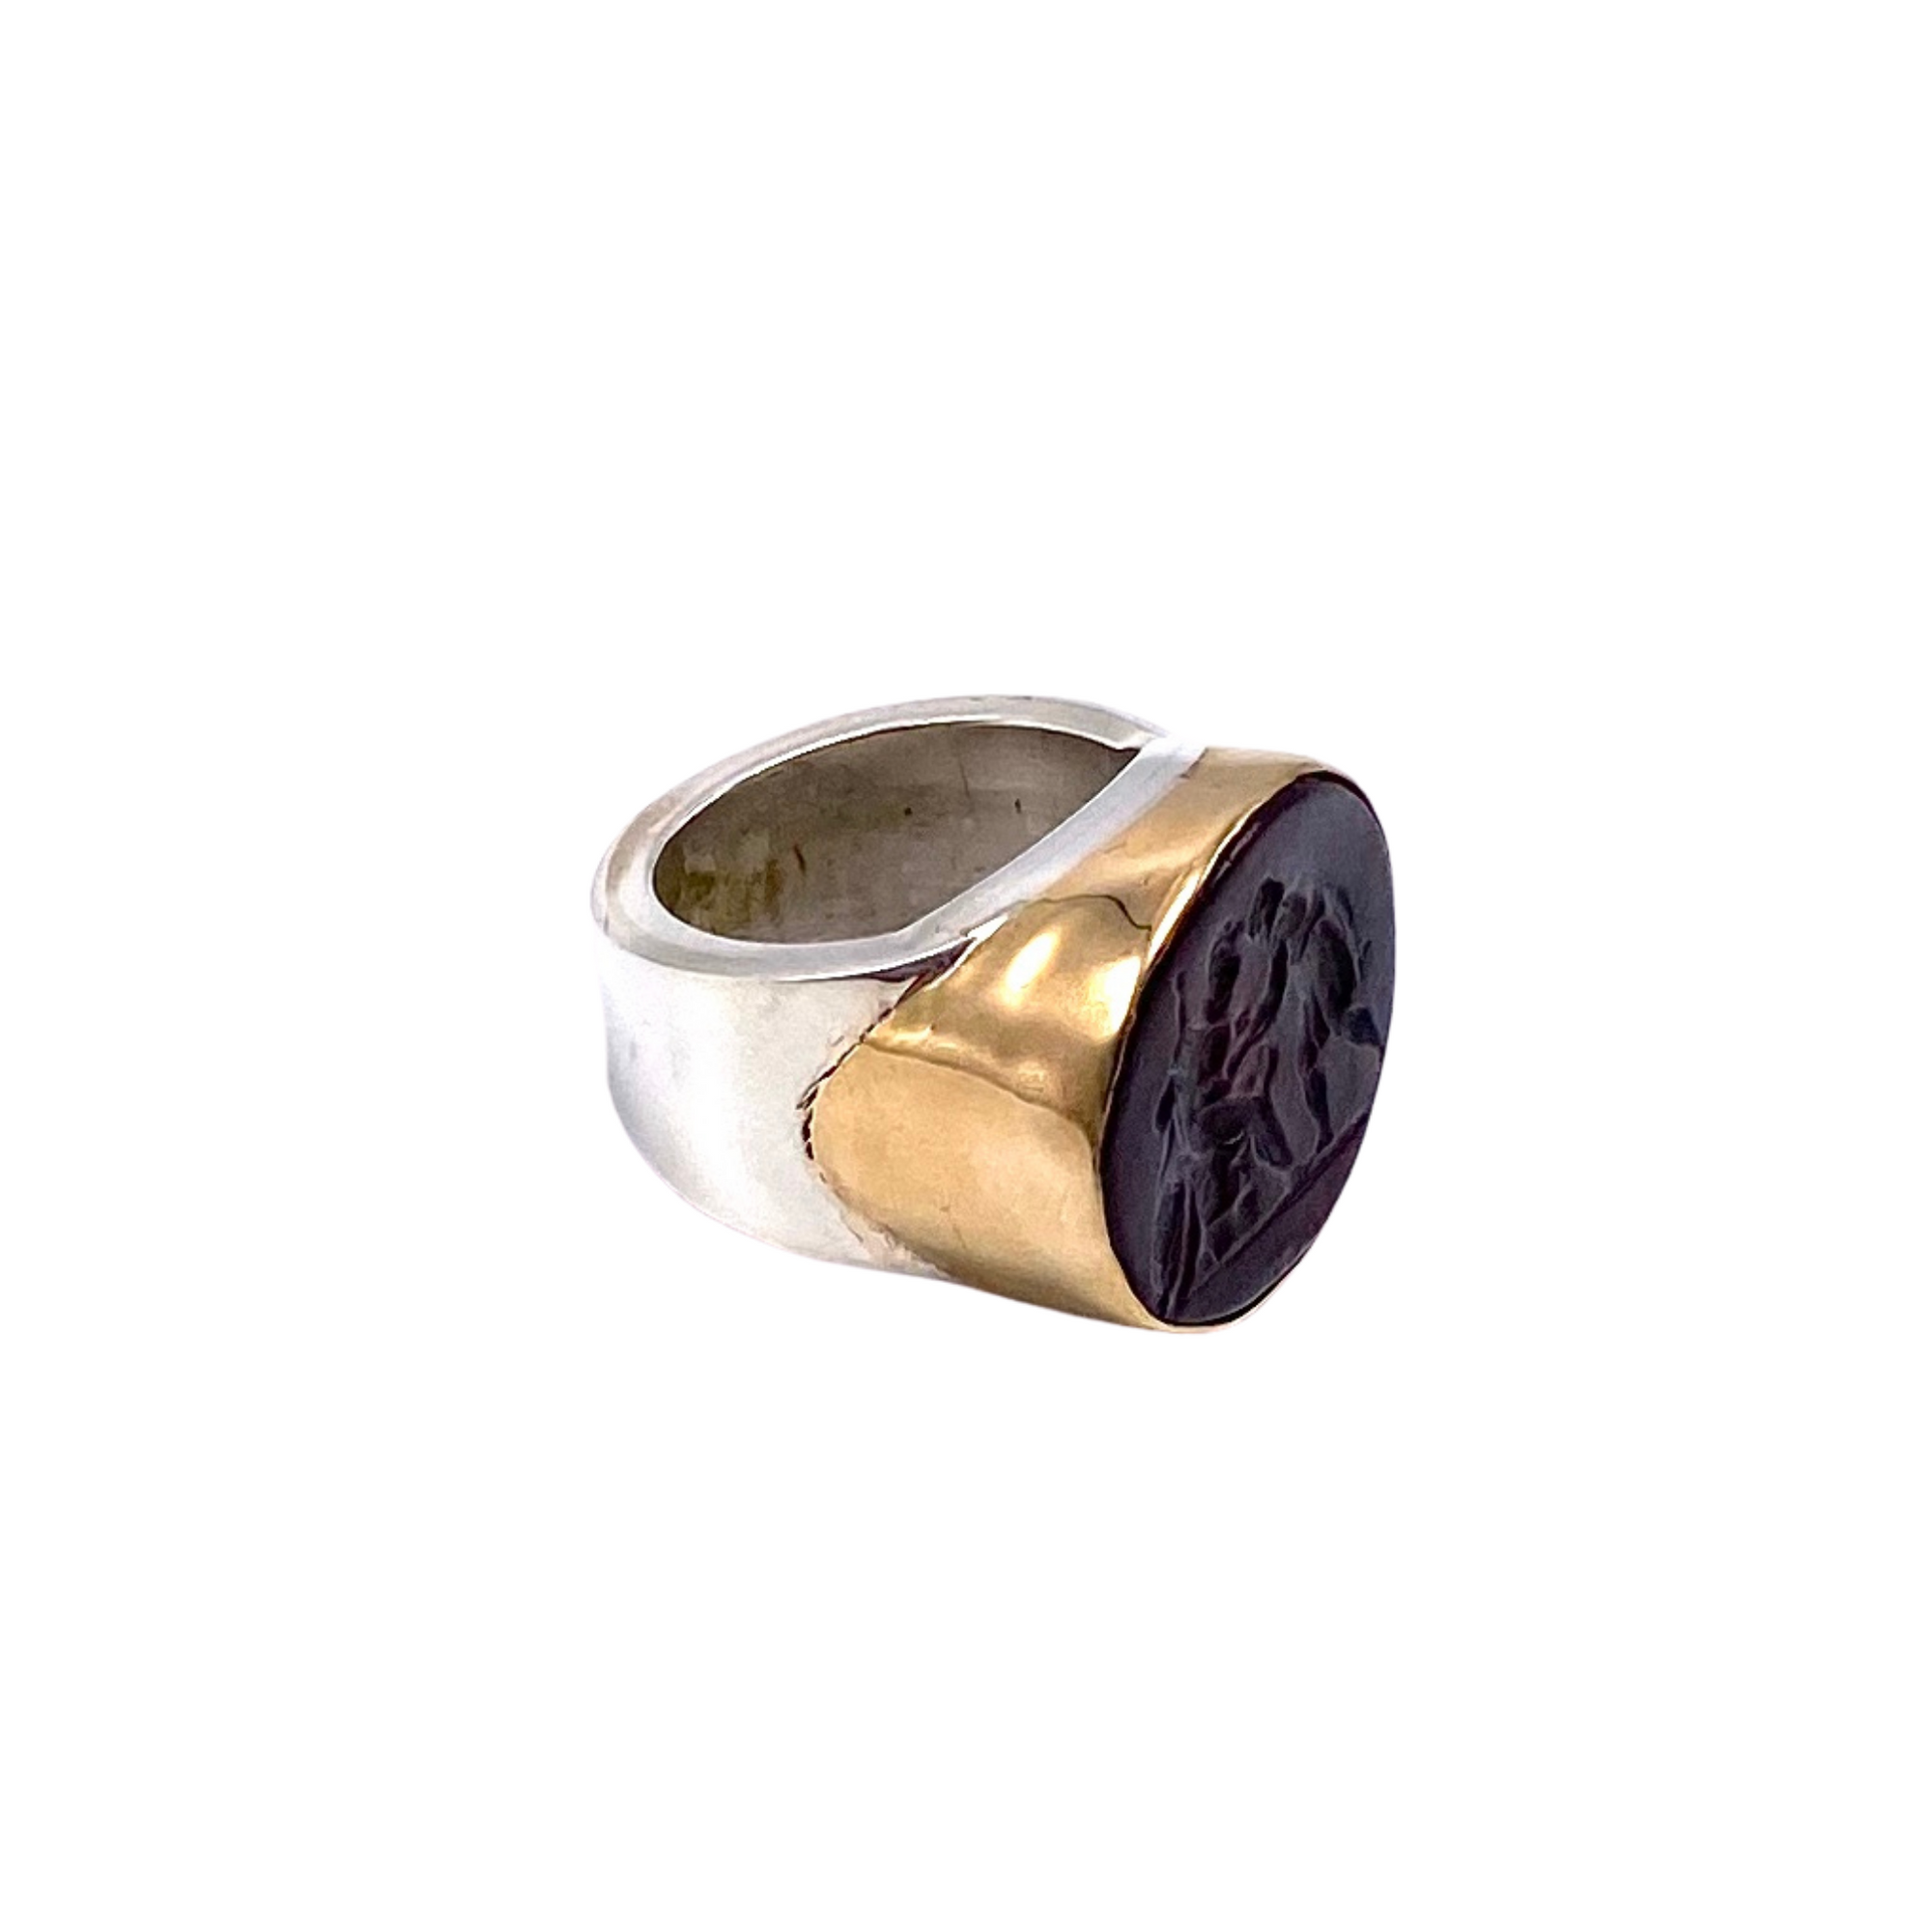 Intaglio Mixed Metal Ring